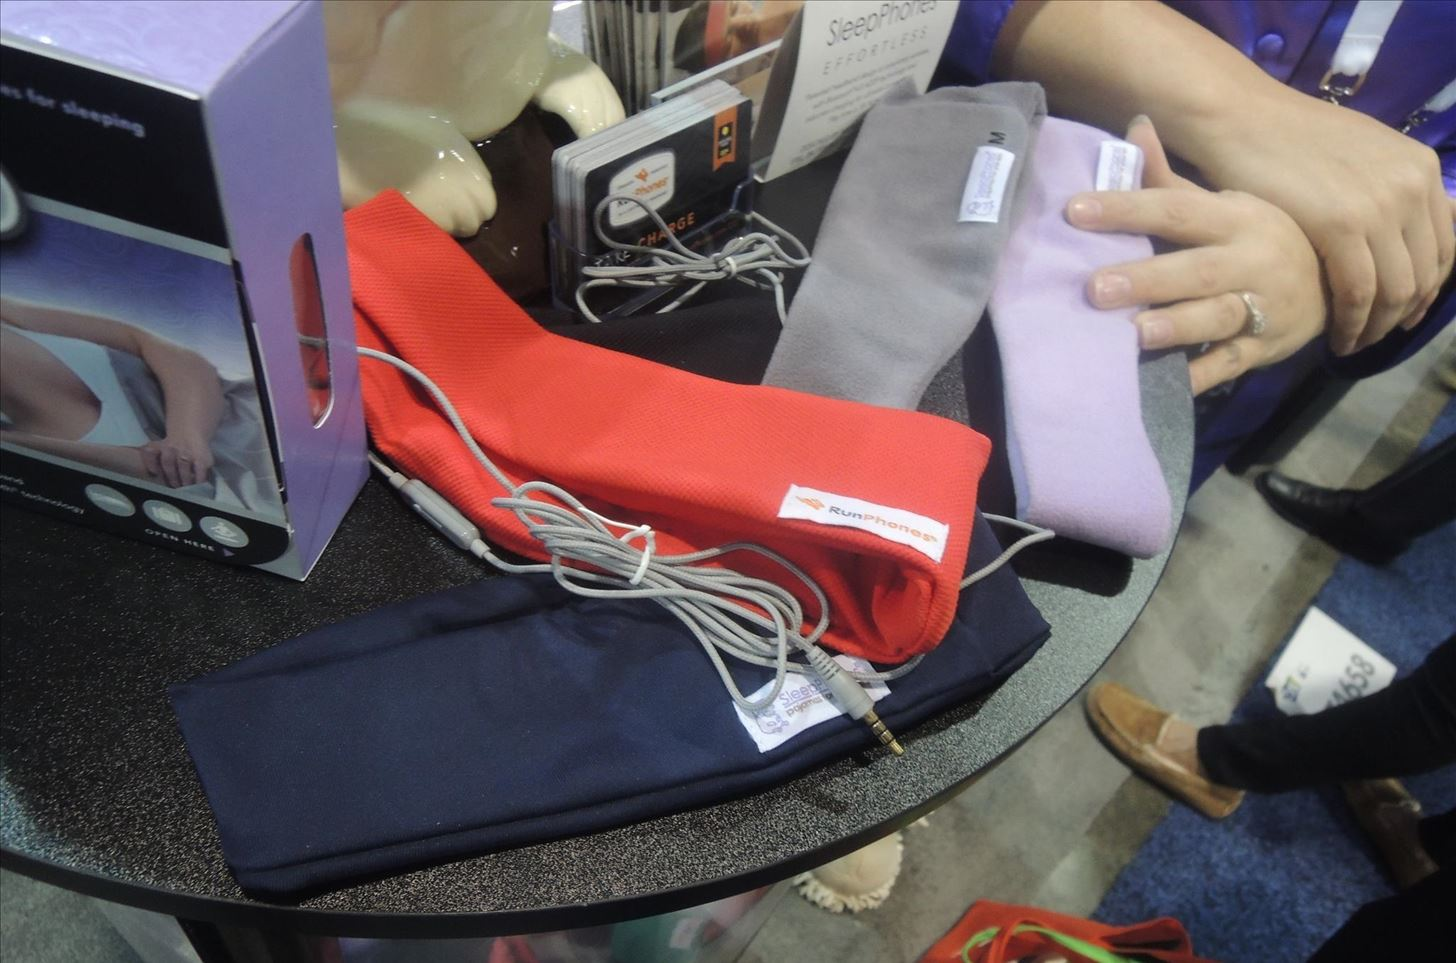 CES 2015: These Headbands Are Really Comfortable Headphones for Sleeping or Running